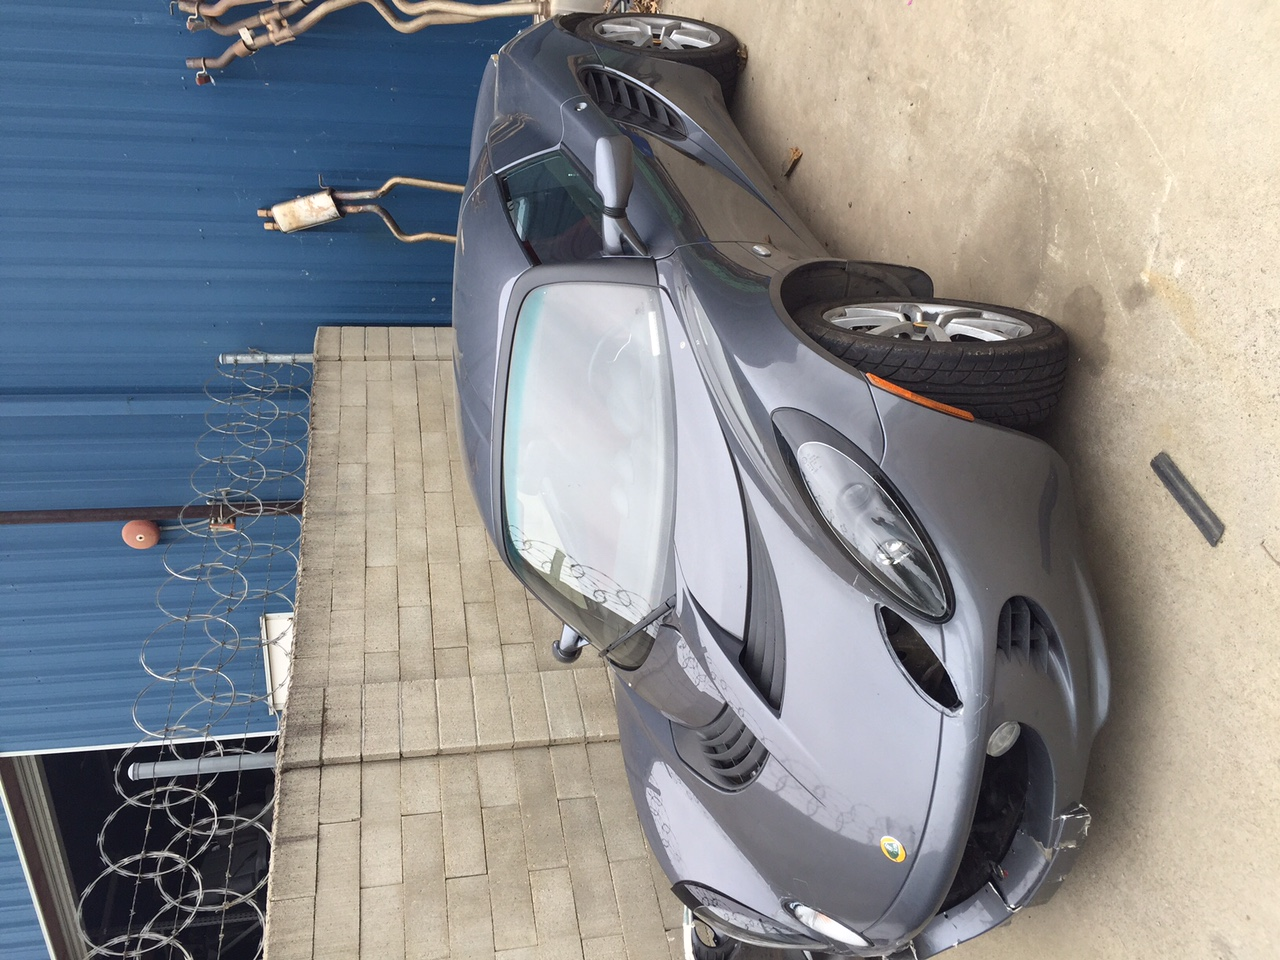 2005 Lotus Elise Parting out